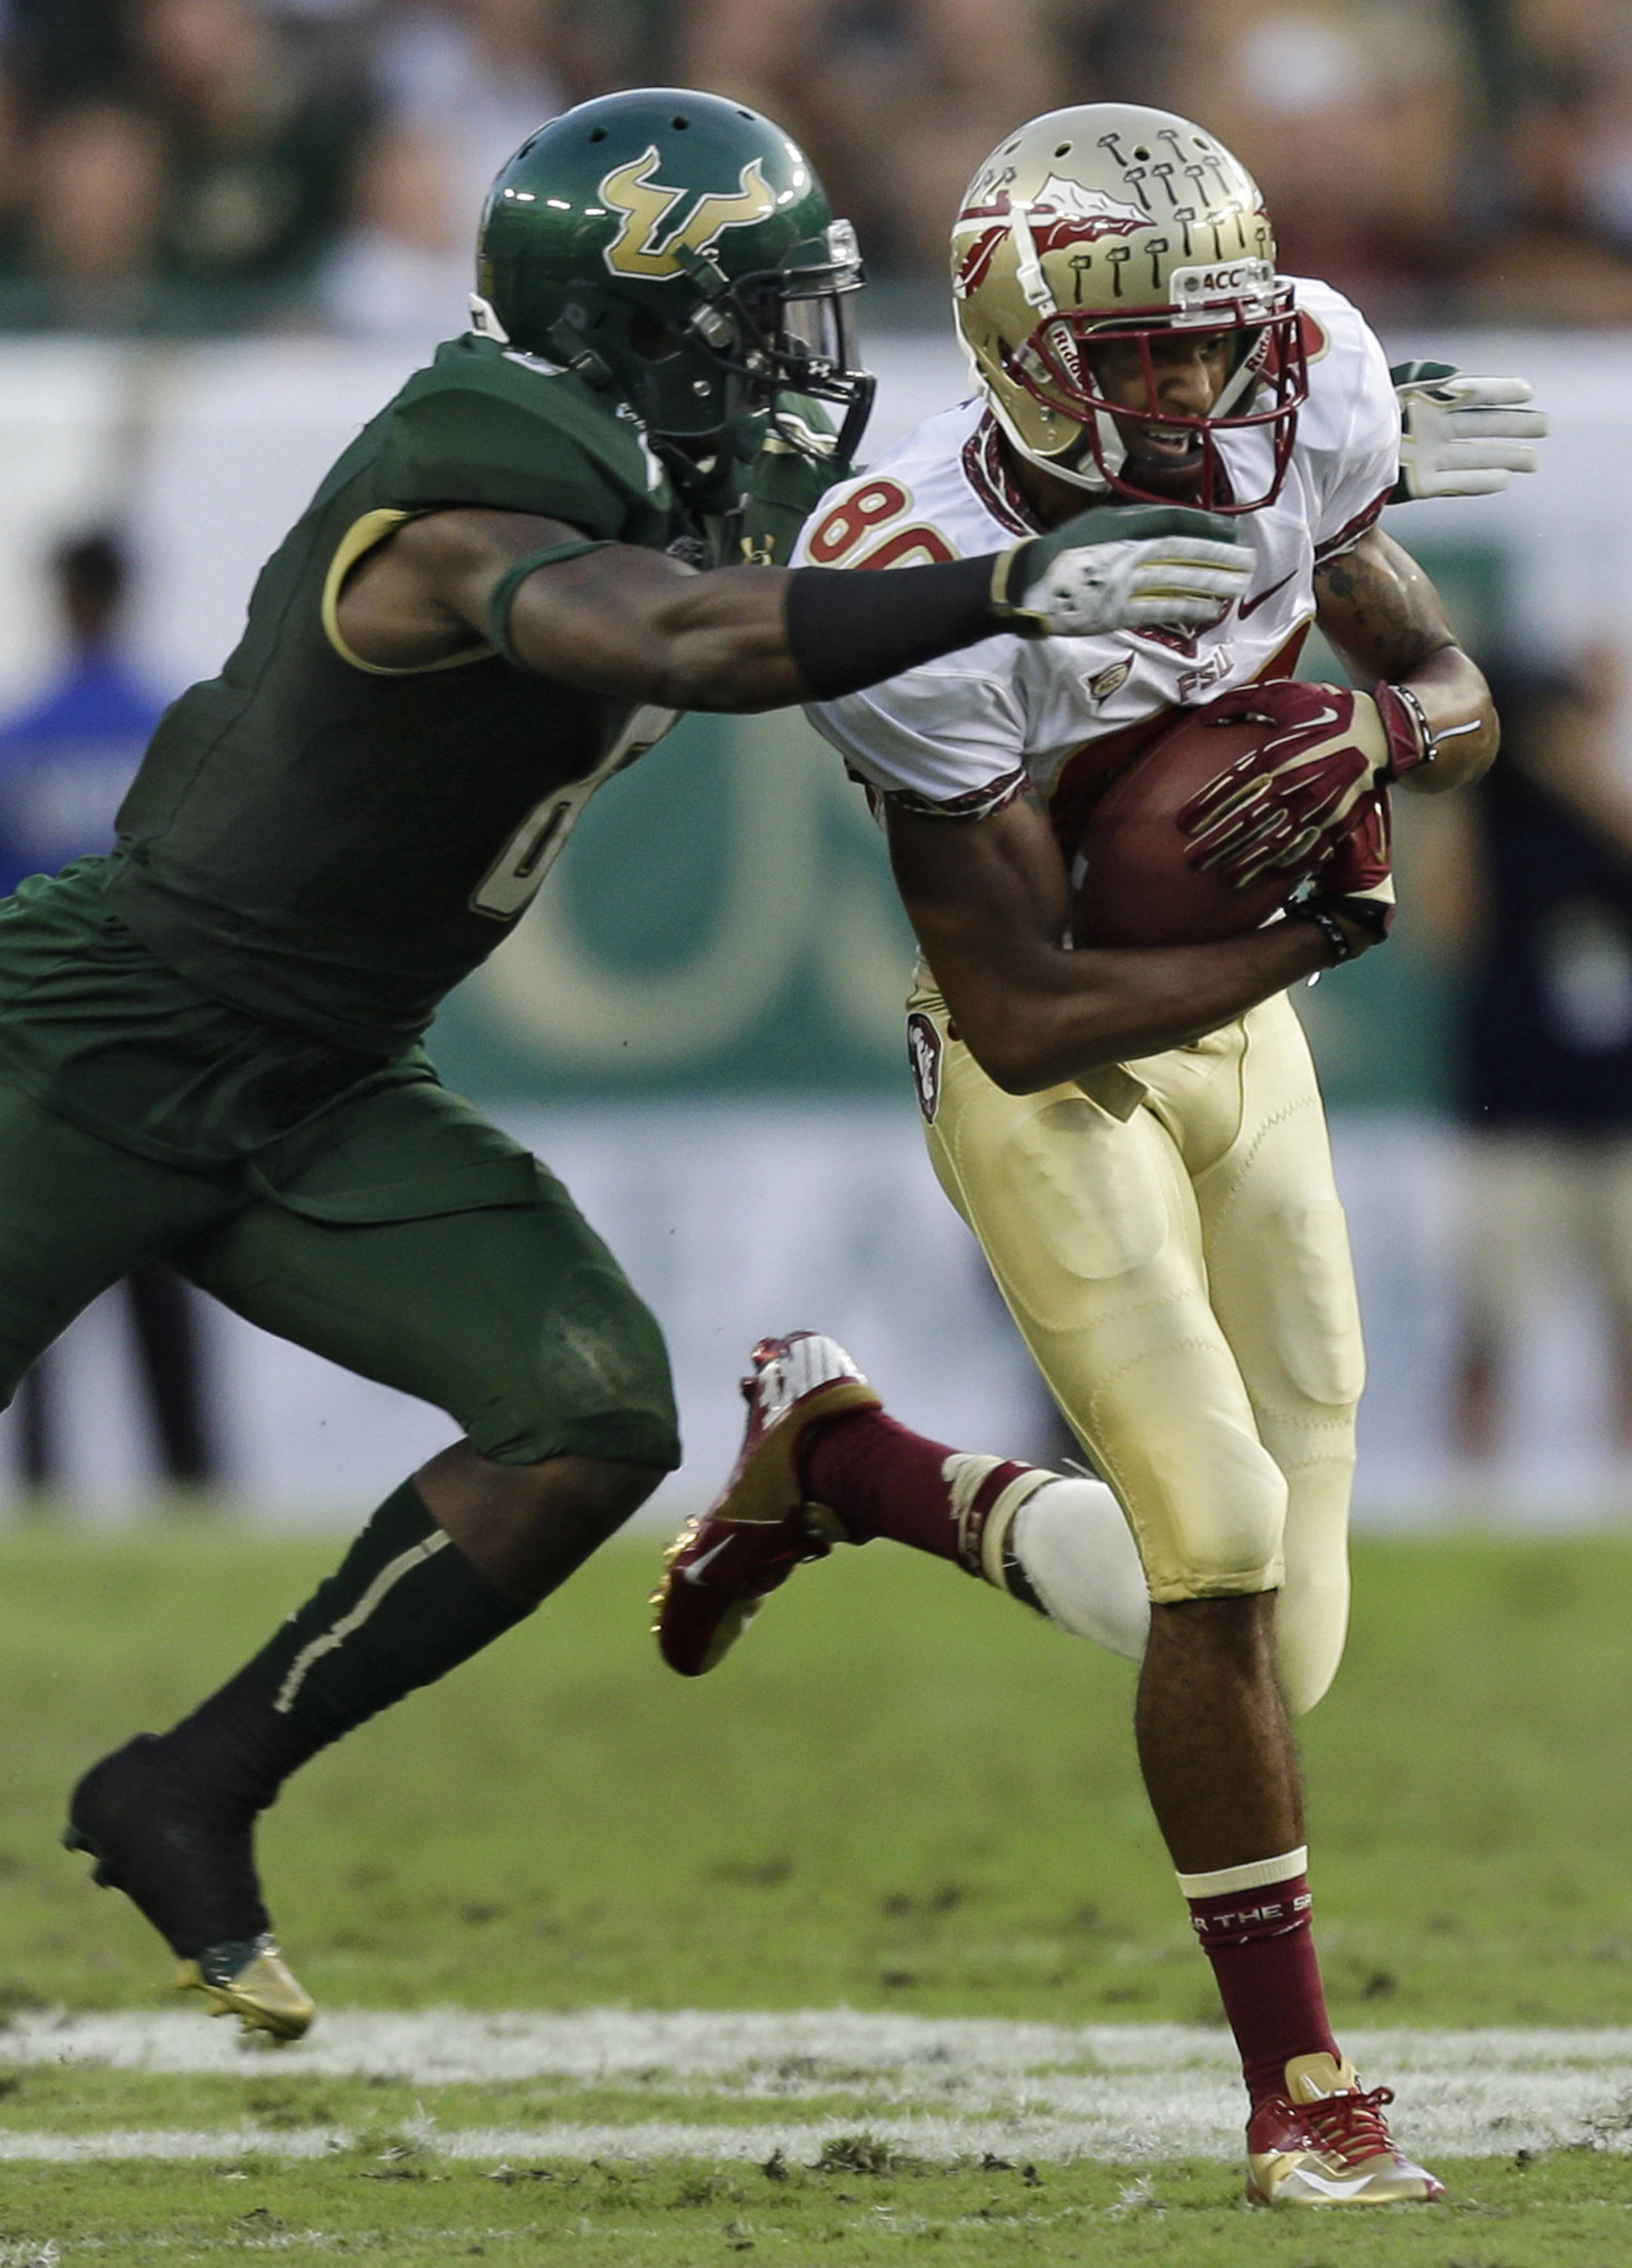 Florida State wide receiver Rashad Greene (80) is stopped by South Florida cornerback Kayvon Webster (6) during the second quarter. (AP Photo/Chris O'Meara)